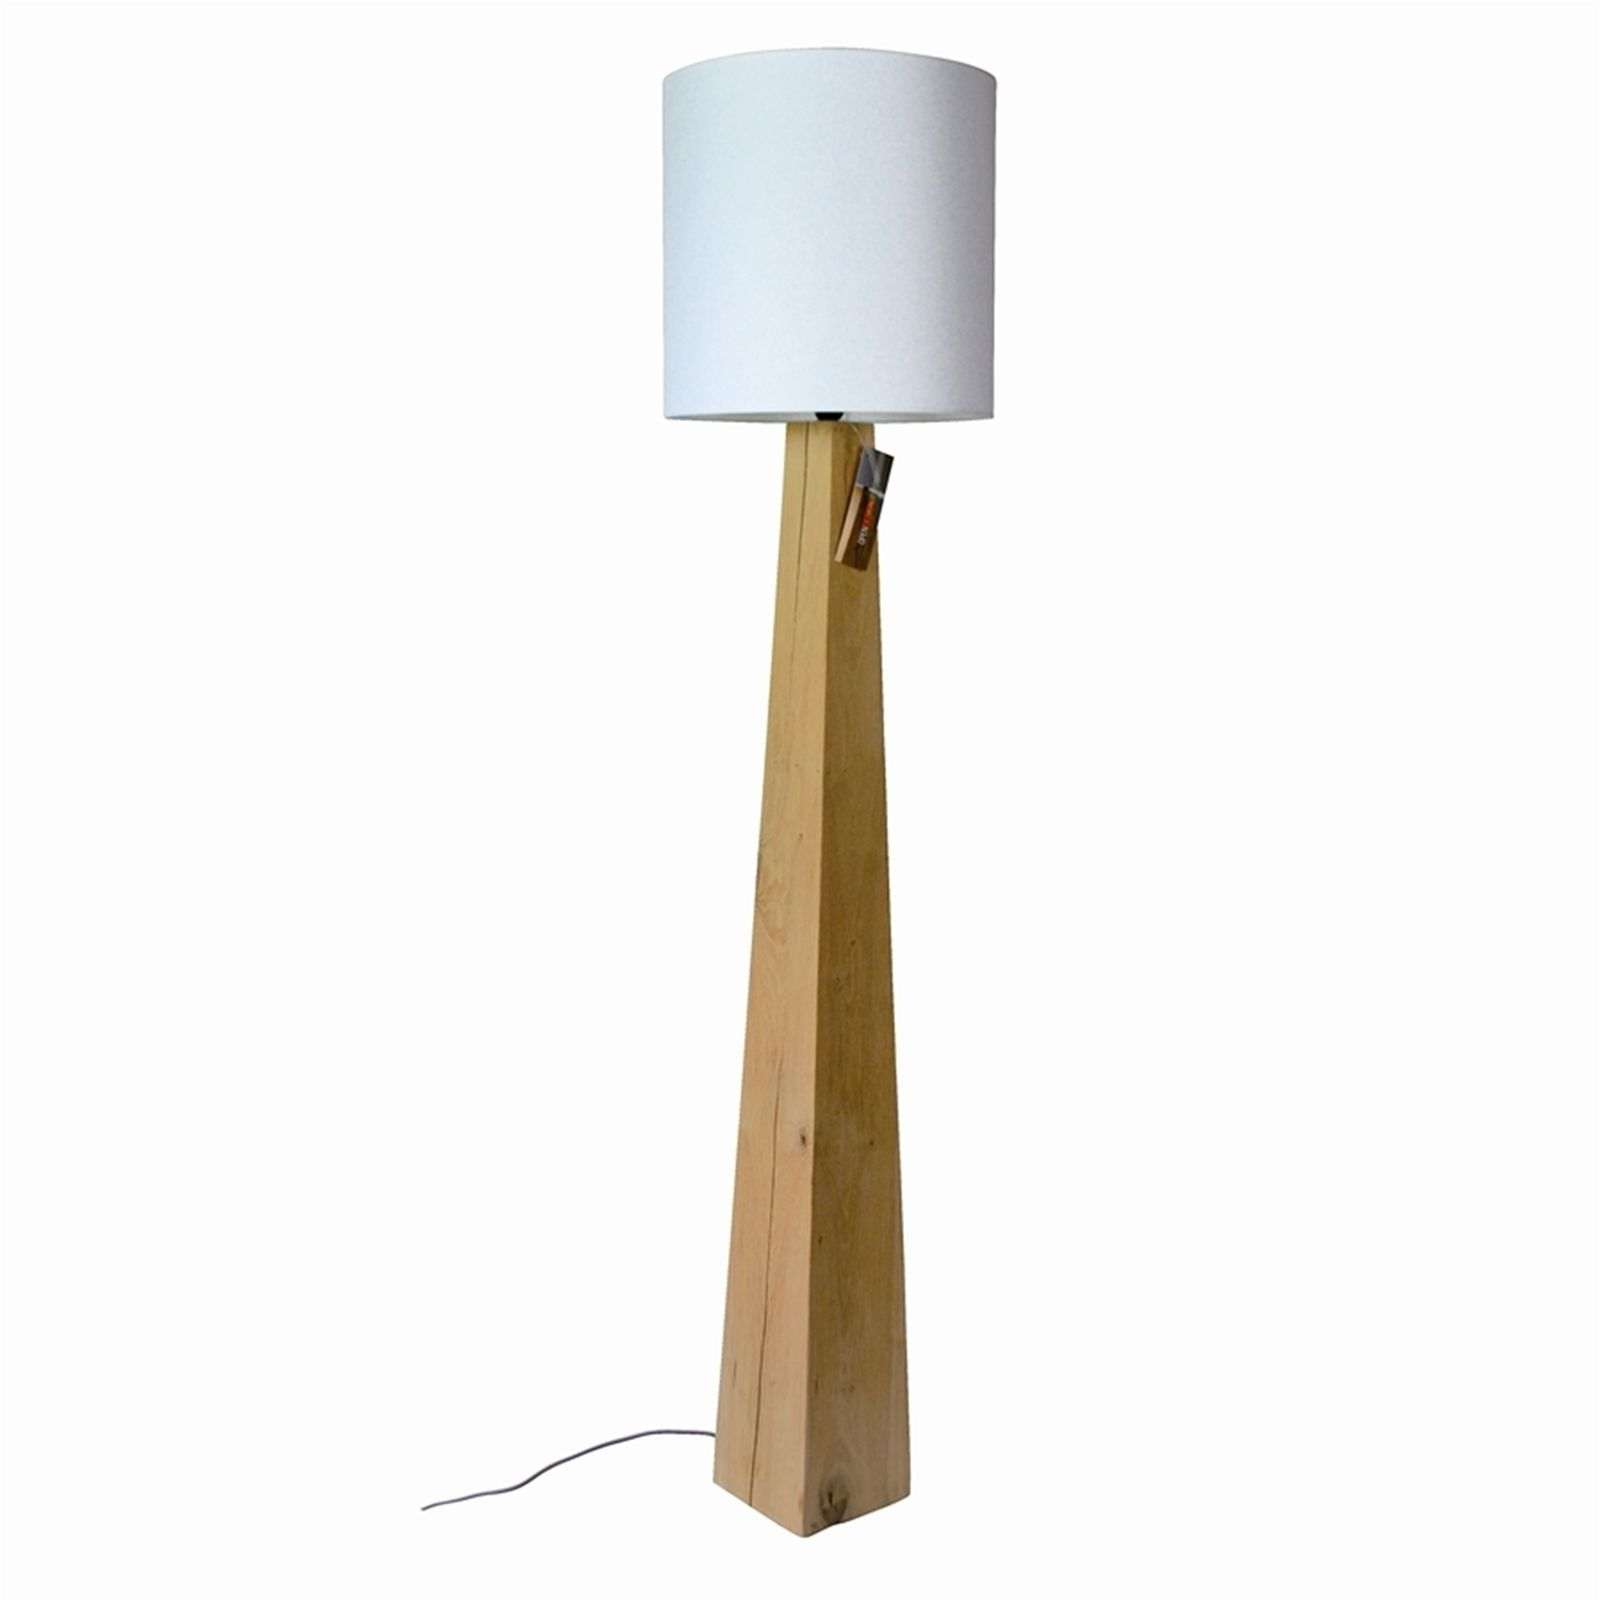 open design metronome no1 lampadaire en bois design beige brandalley. Black Bedroom Furniture Sets. Home Design Ideas